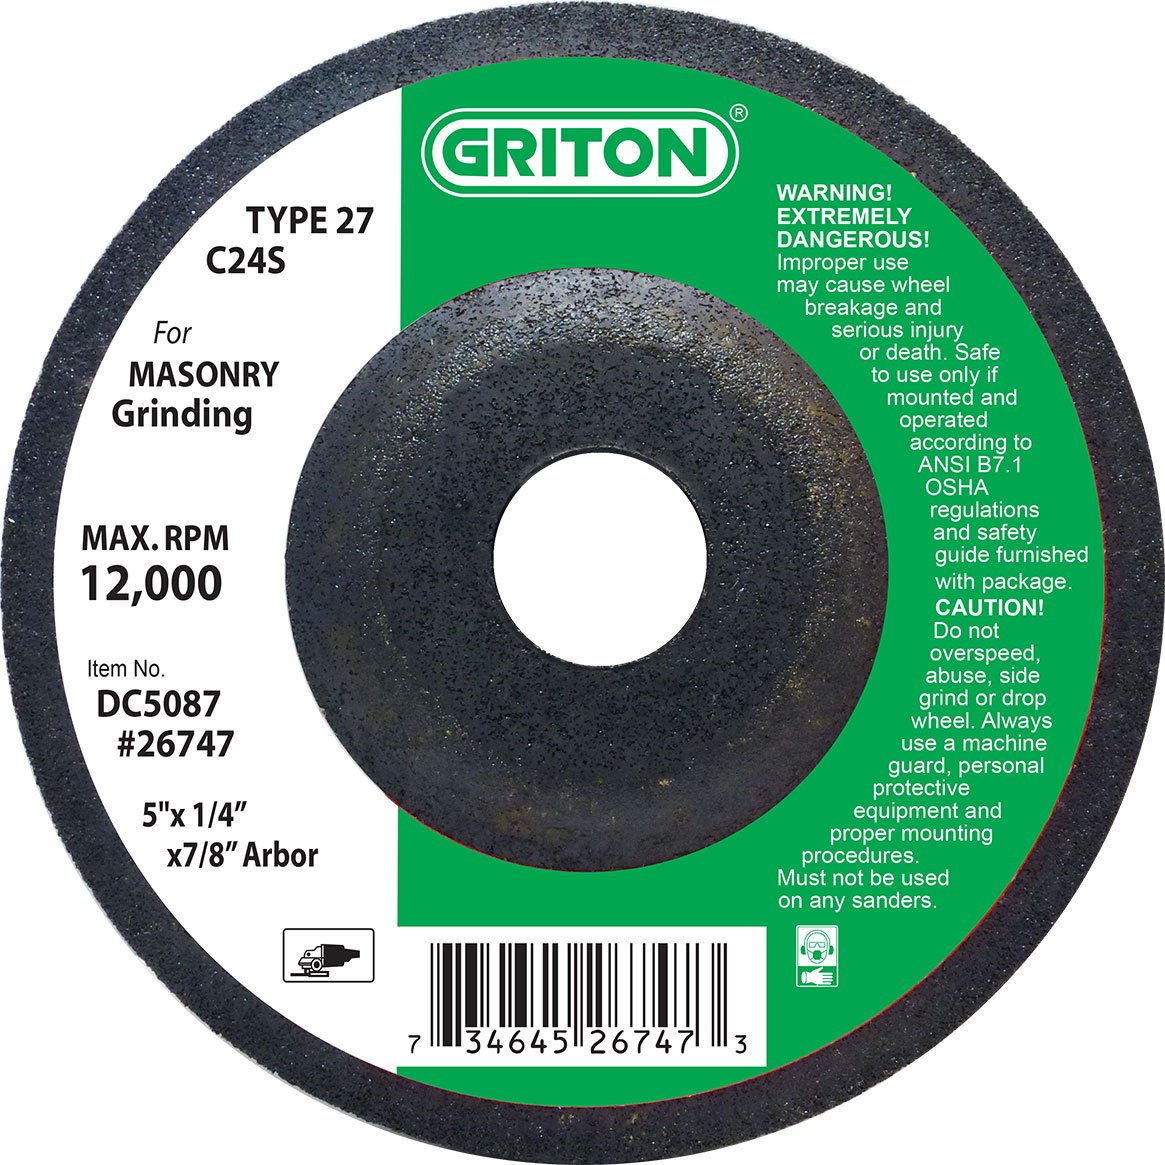 5 Diameter 5 Diameter Griton DC5087 Type 27 Grinding Wheel Used on Masonry Silicon Carbide Pack of 25 Pack of 25 12000 RPM